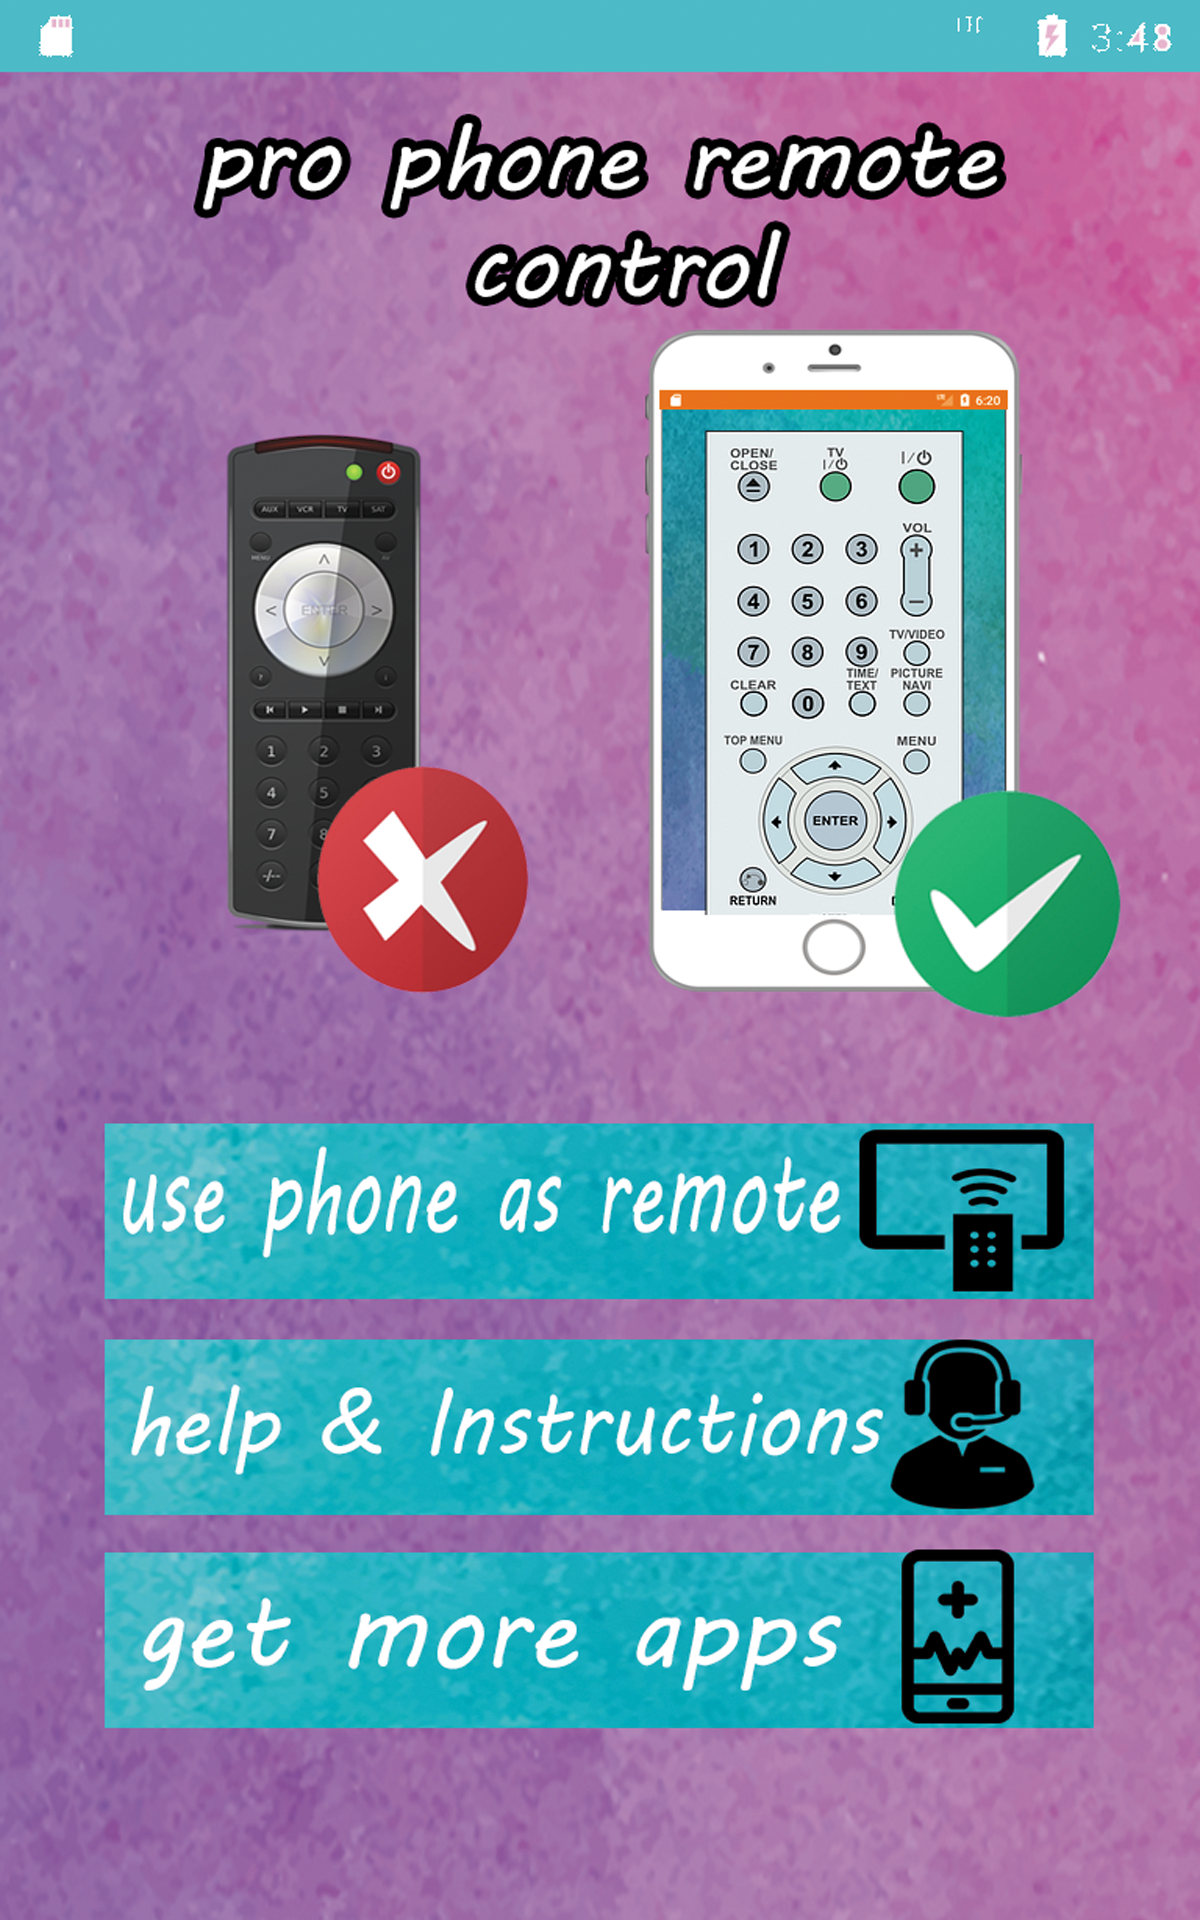 Zoom IMG-3 pro tv remote control phone